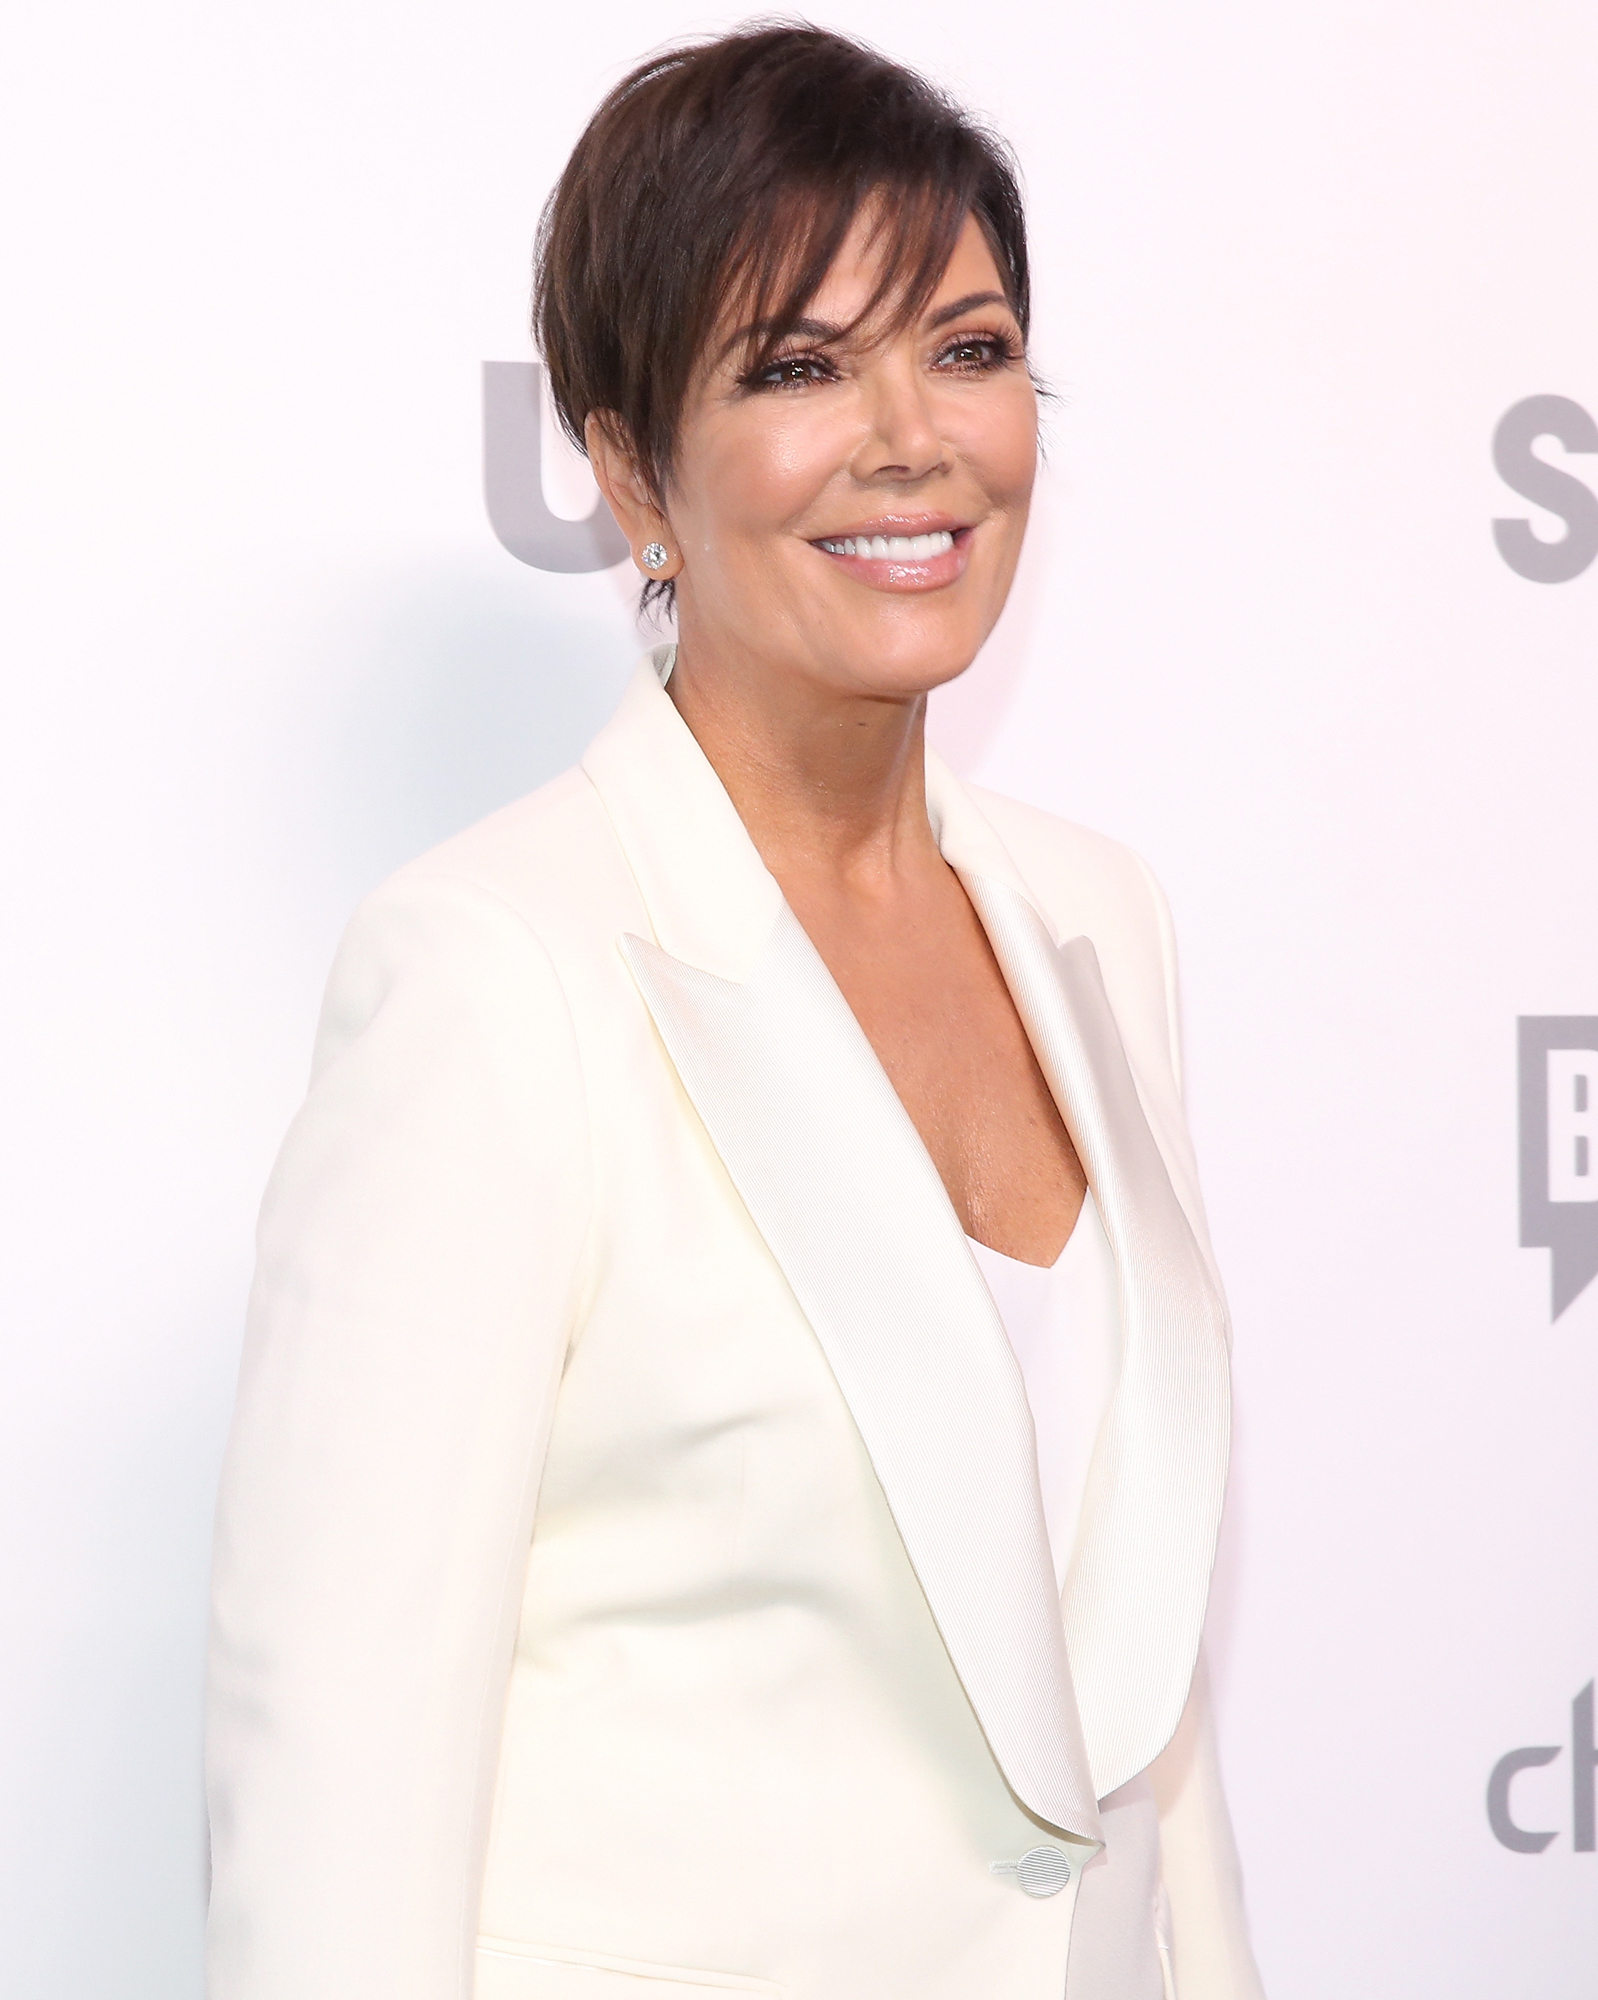 celebrity-wedding-officiant-kris-jenner-1015.jpg